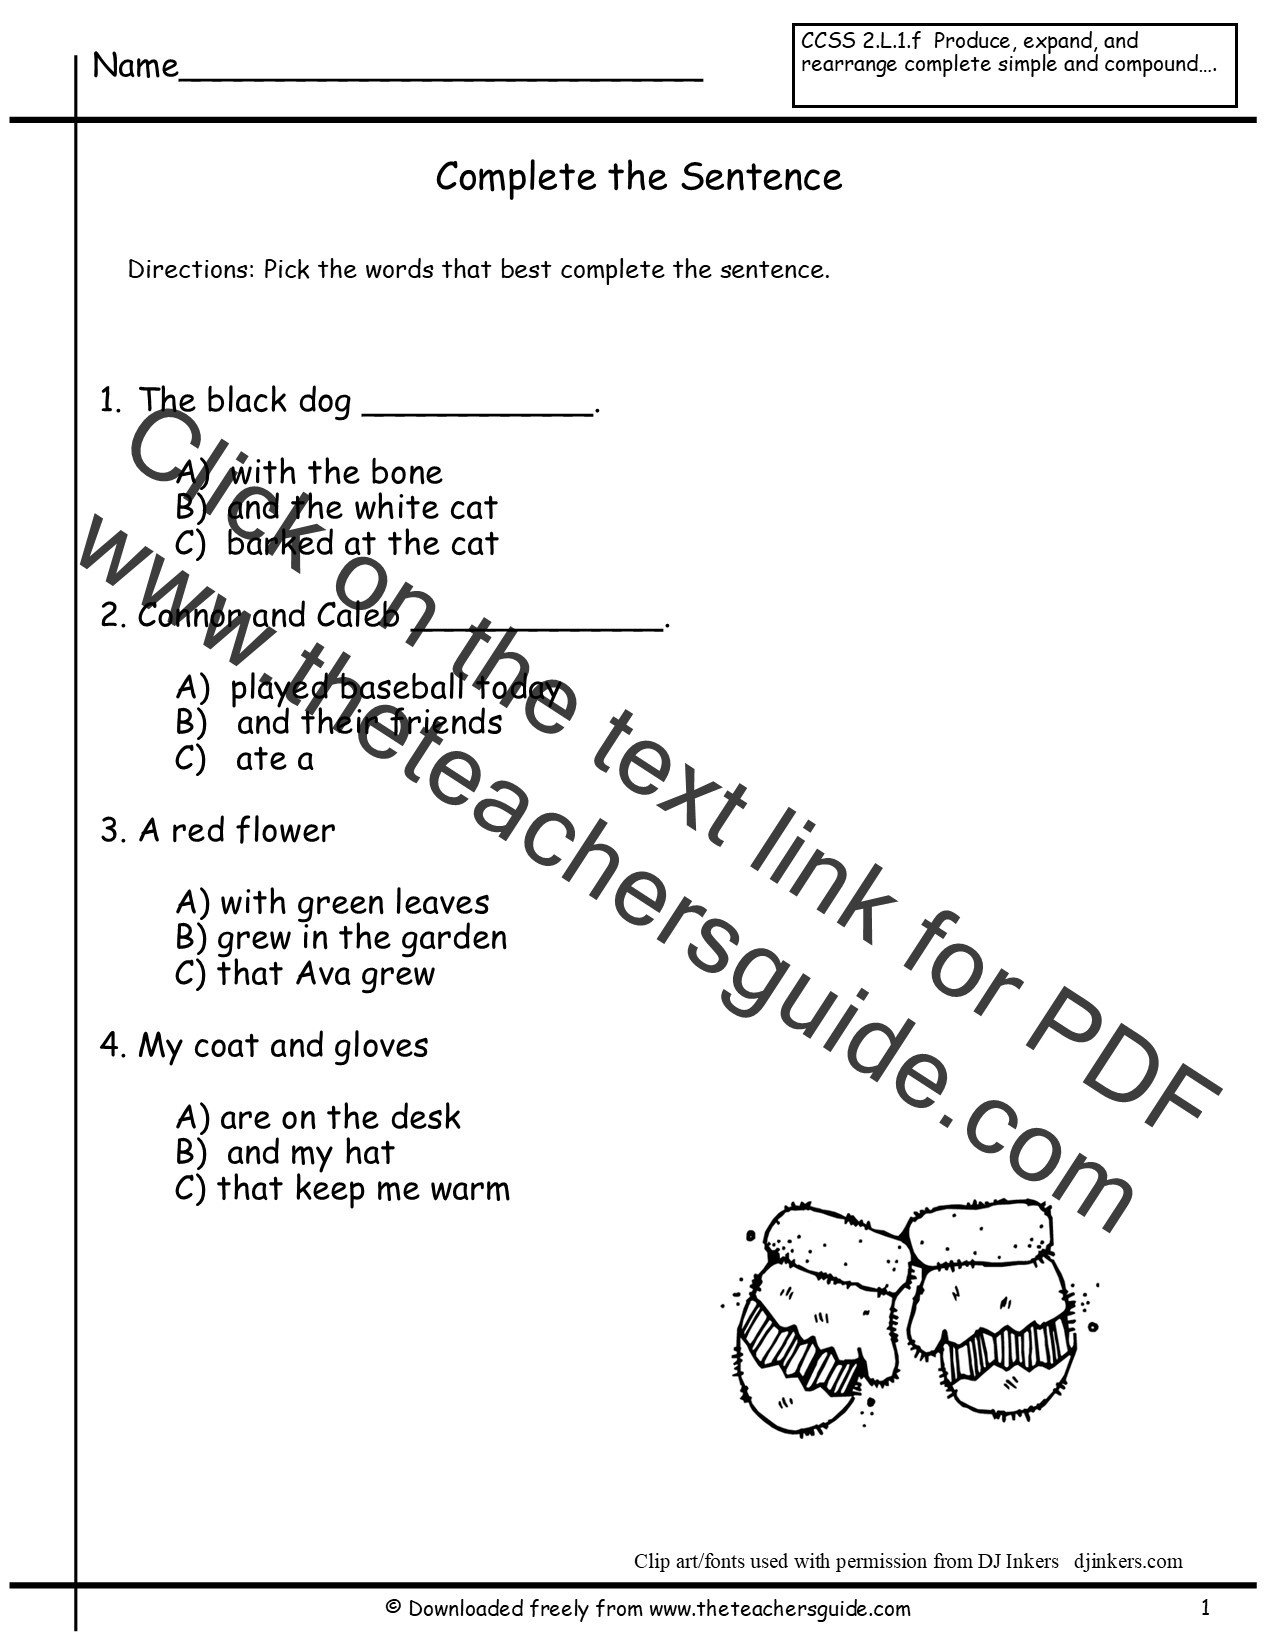 Making Compound Sentences Worksheets Joining Words Worksheet for Grade 2